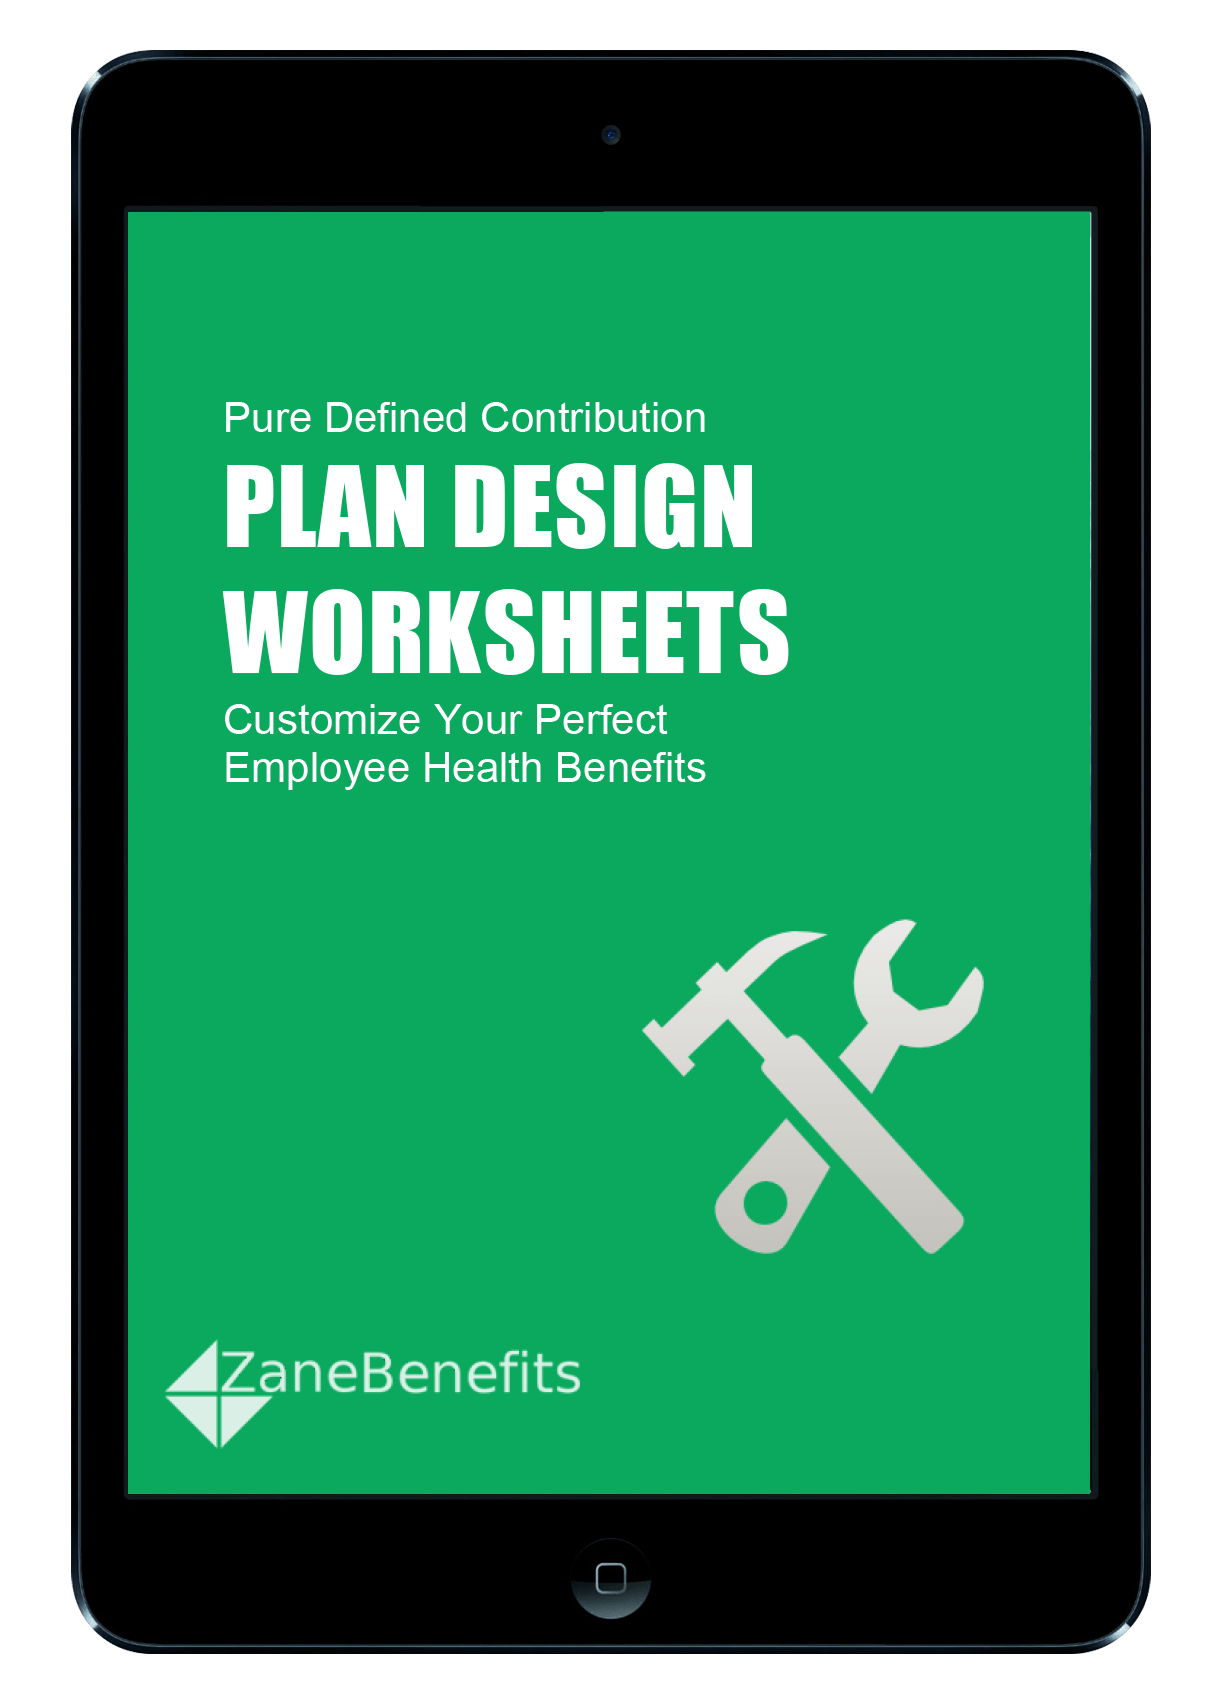 Plan Design Worksheets For Pure Defined Contribution